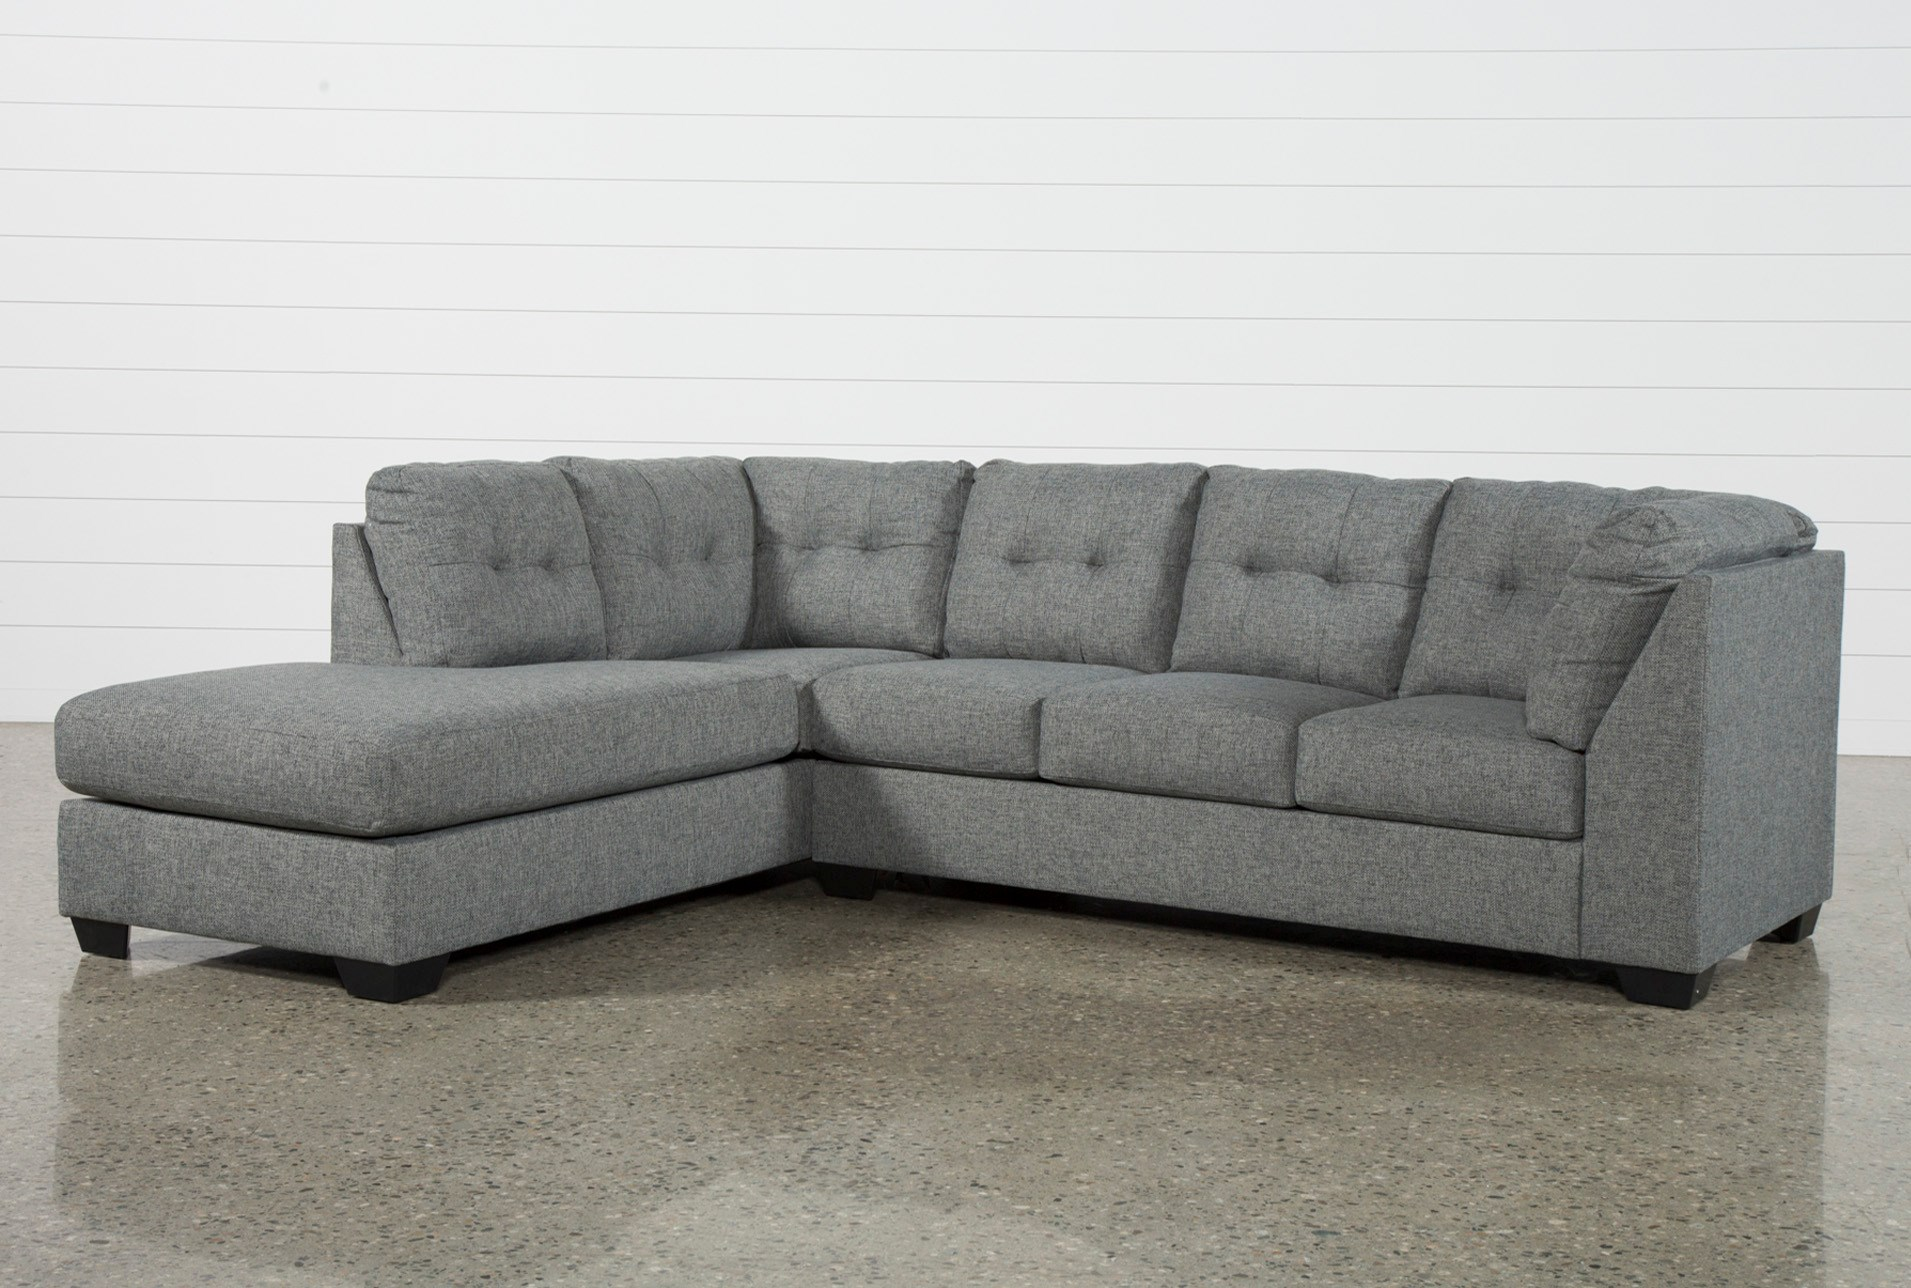 Arrowmask 2 Piece Sectional W Laf Chaise Qty 1 Has Been Successfully Added To Your Cart